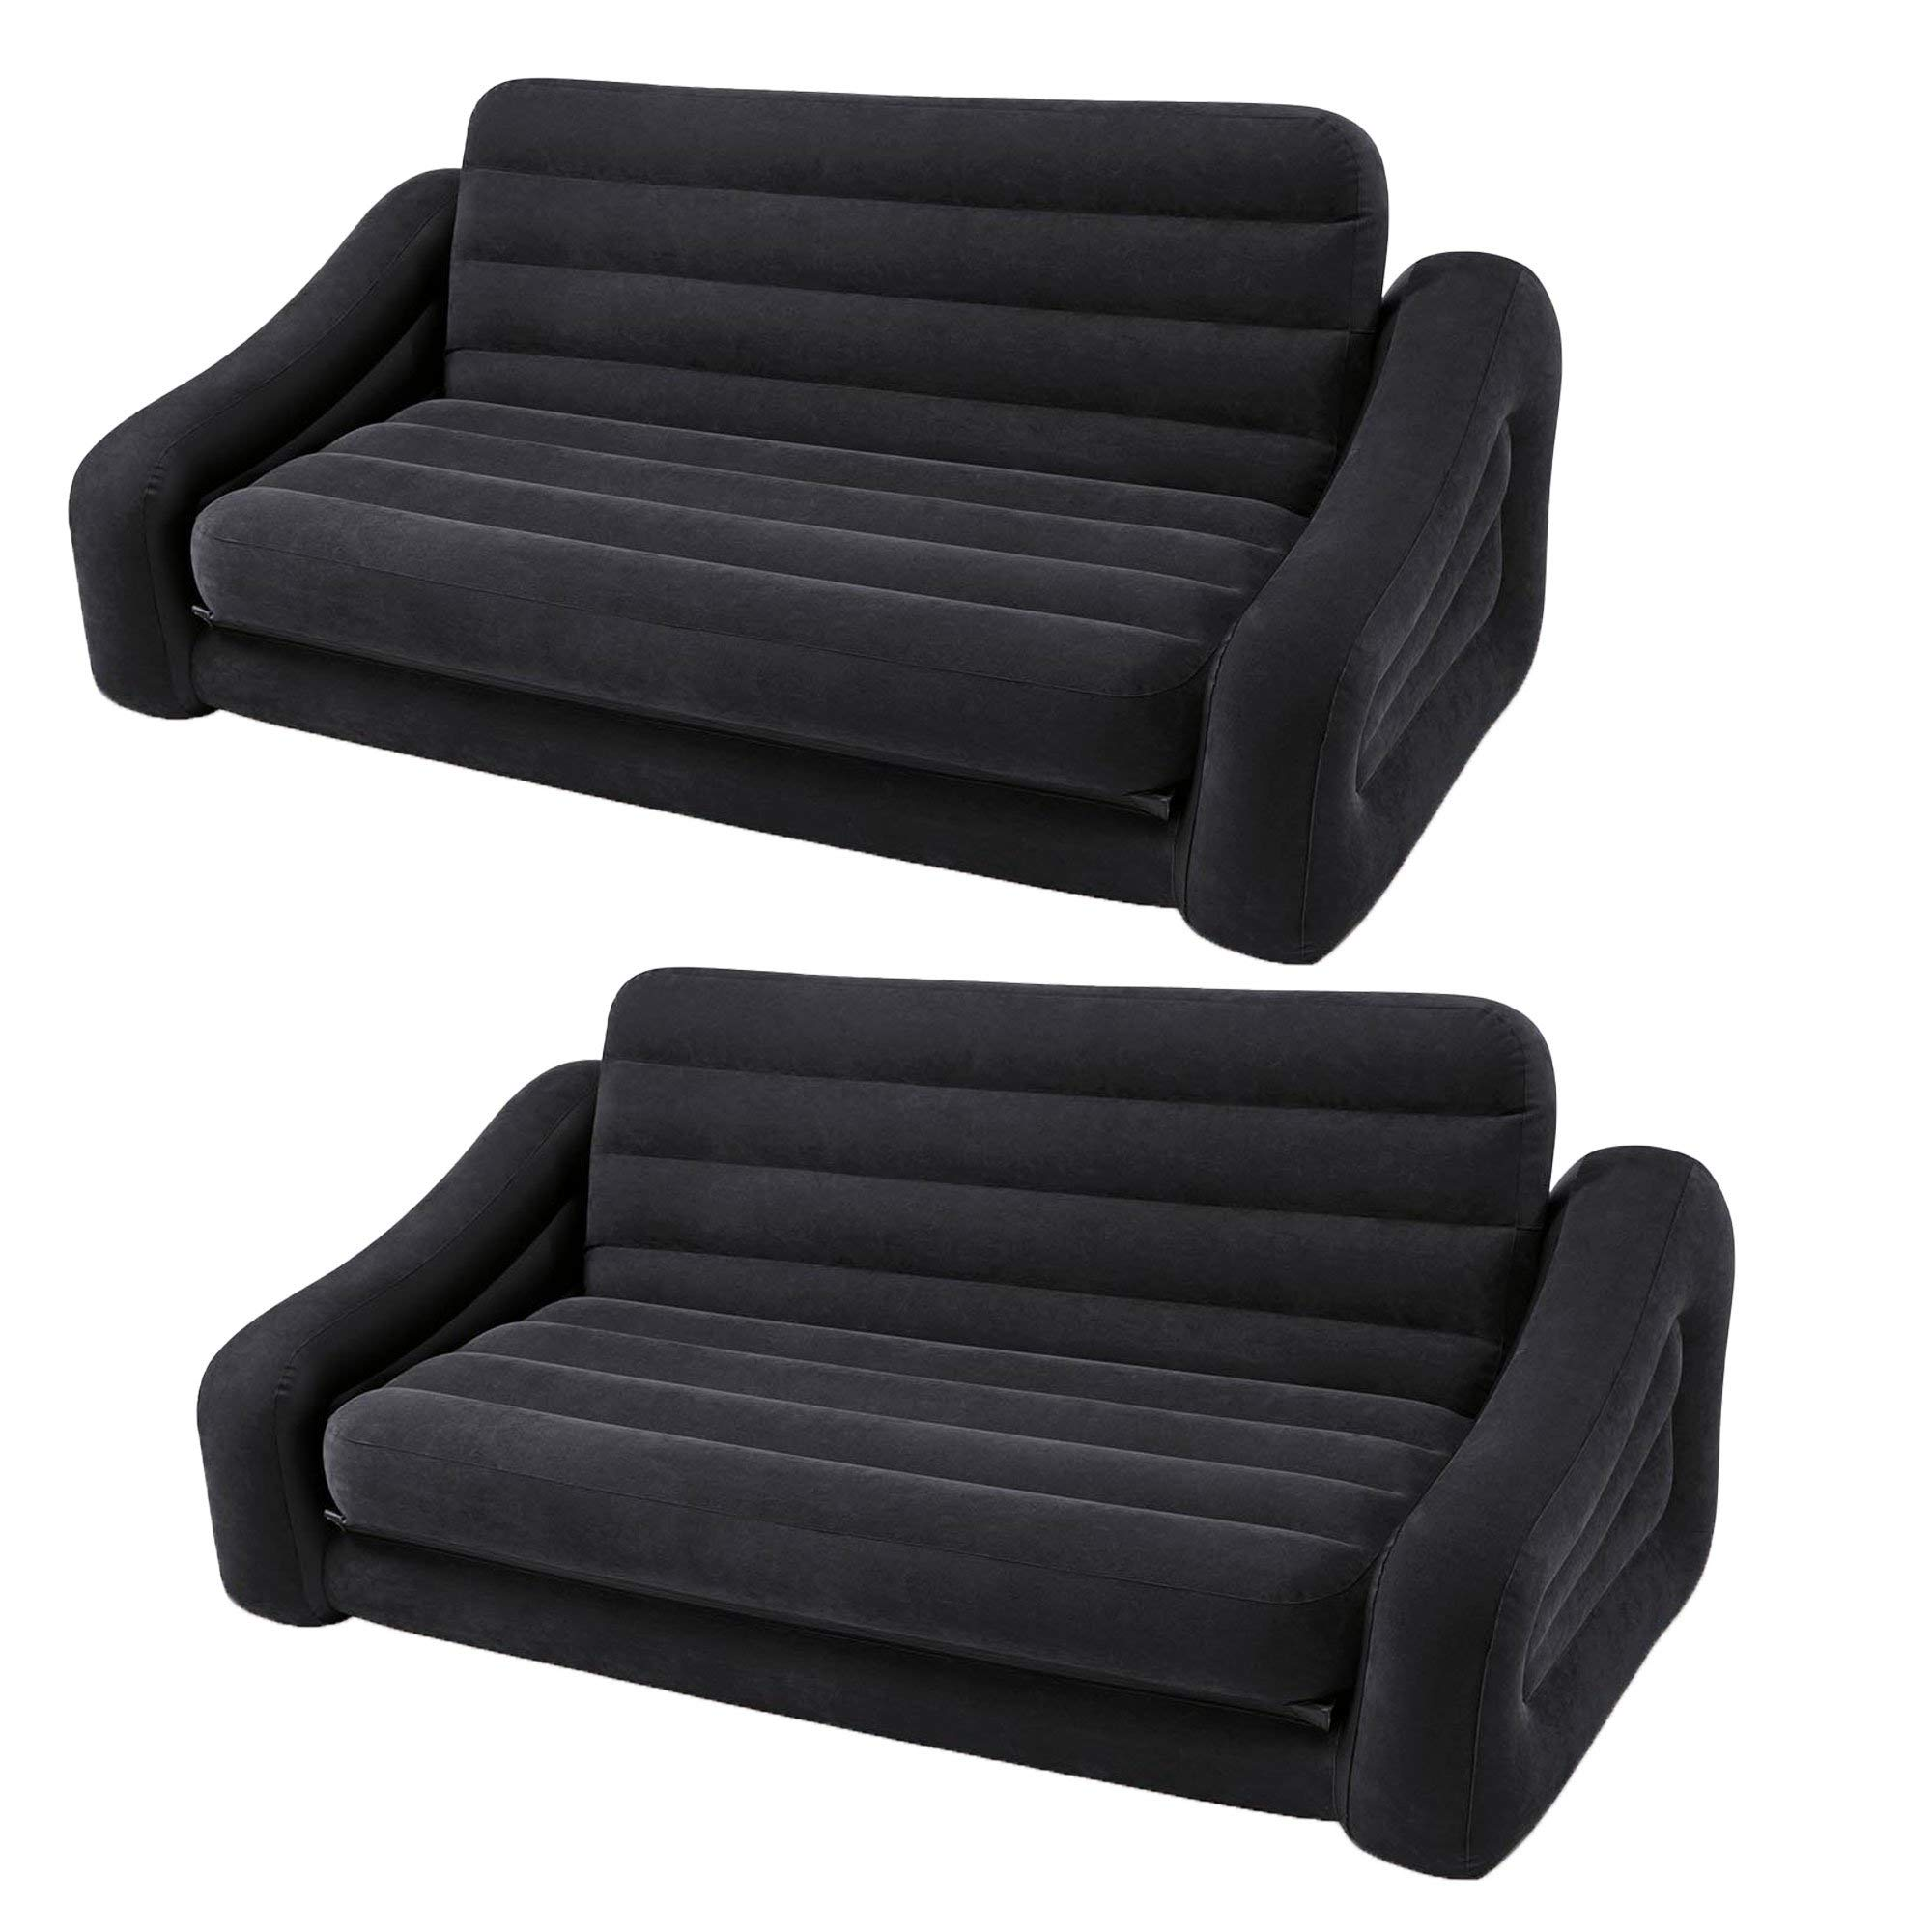 Intex Inflatable Queen Size Pull Out Futon Sofa Couch Bed, Dark Gray (2 Pack)